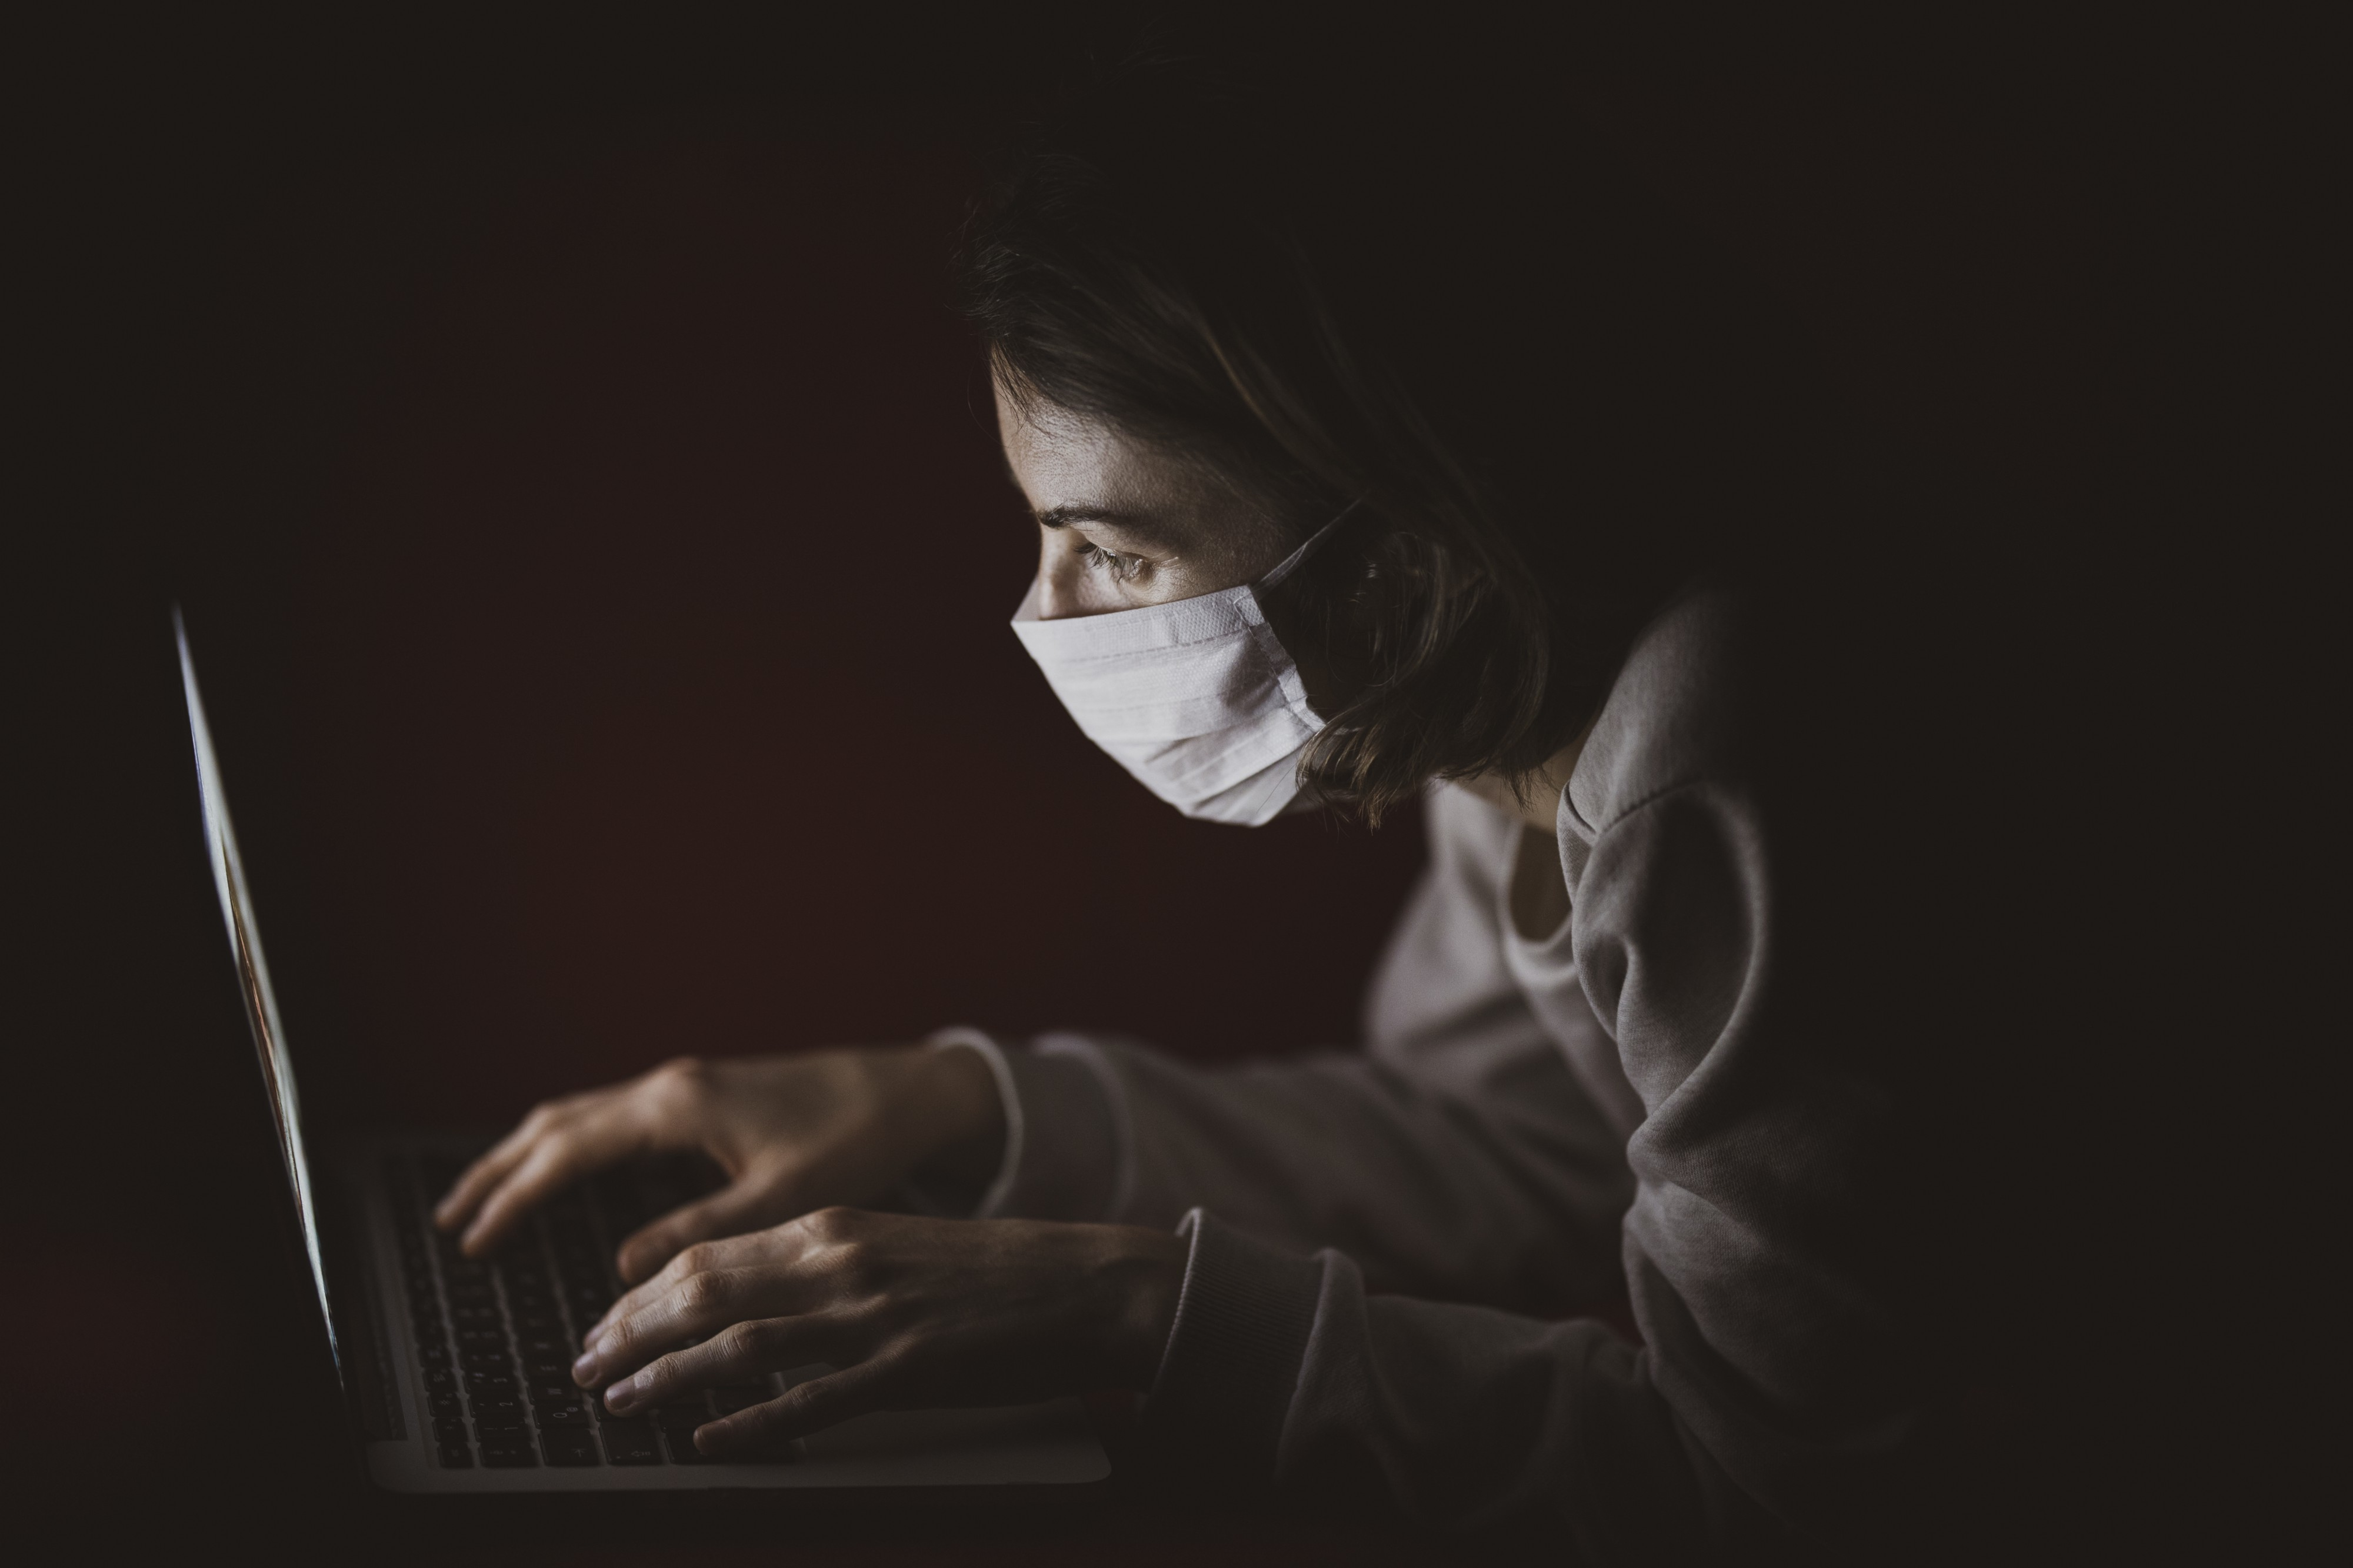 Woman looking into computer screen wearing white mask